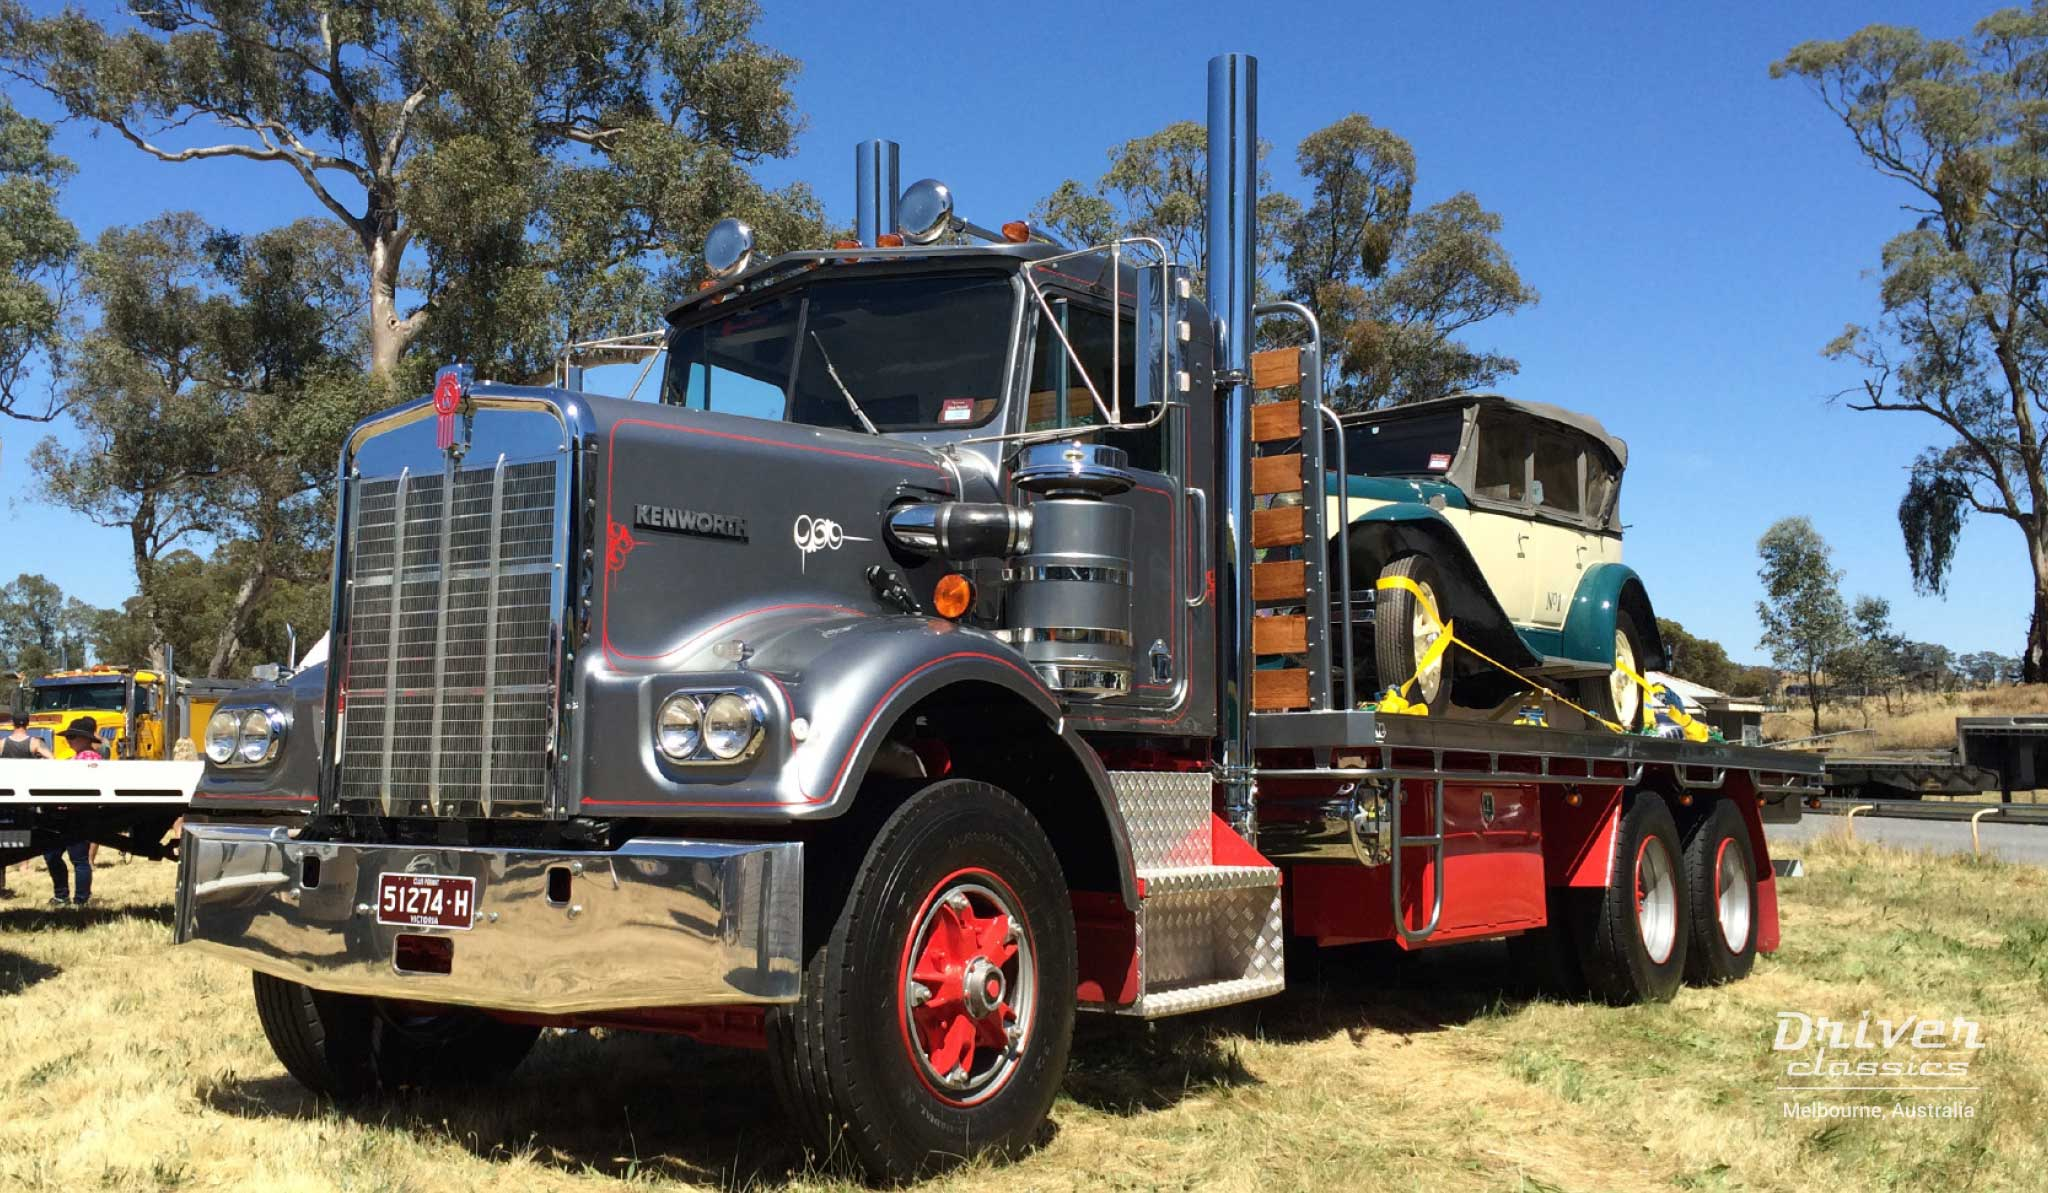 1977 Kenworth W925 truck with 1930 Pontiac 29-6 car on the back, Castlemaine VIC, November 2014